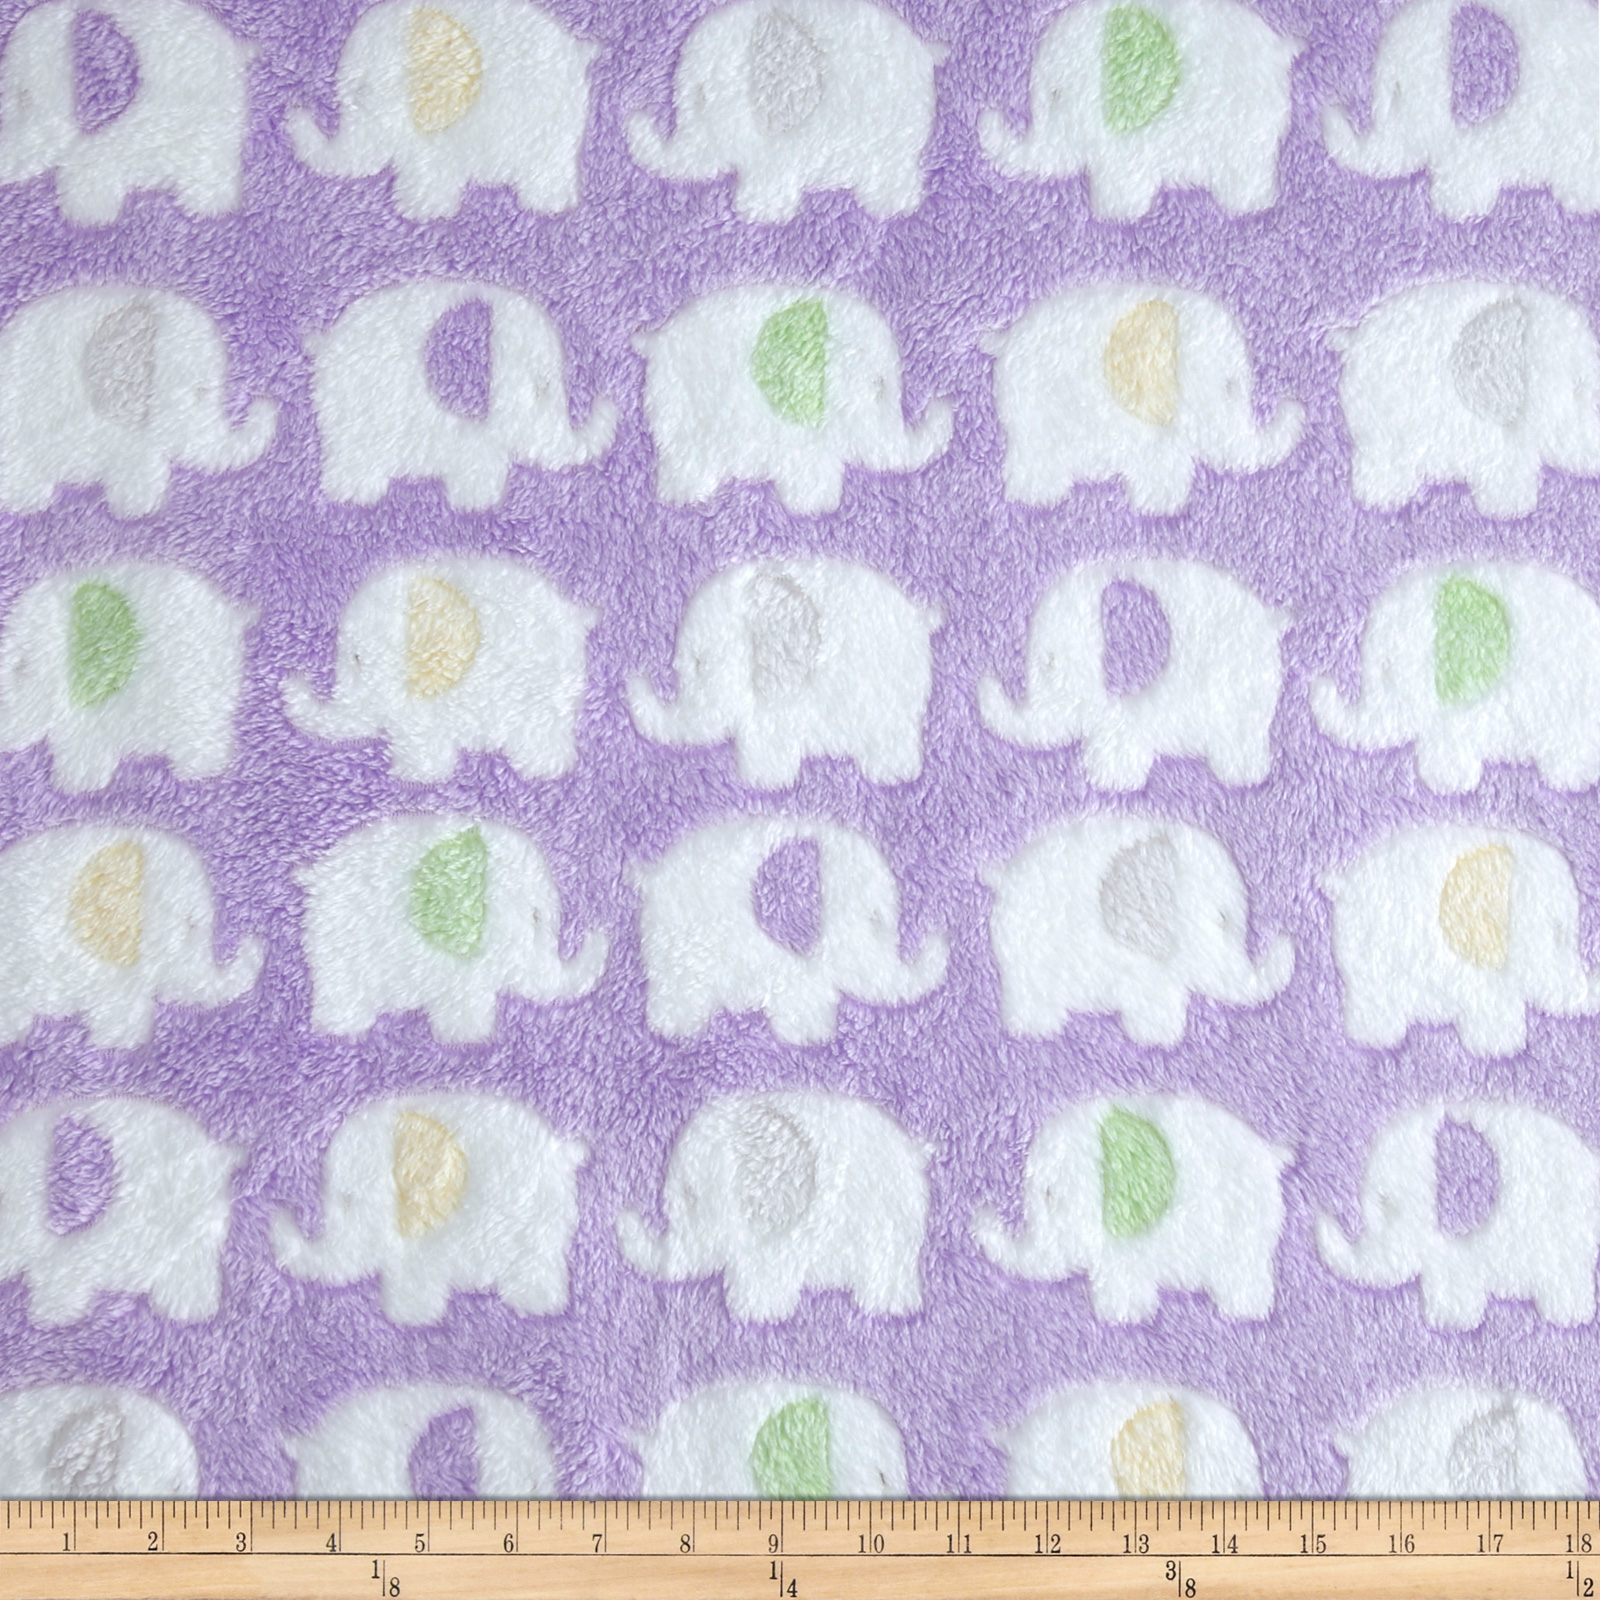 Minky Sunggle Fleece Elephant Lavender Fabric